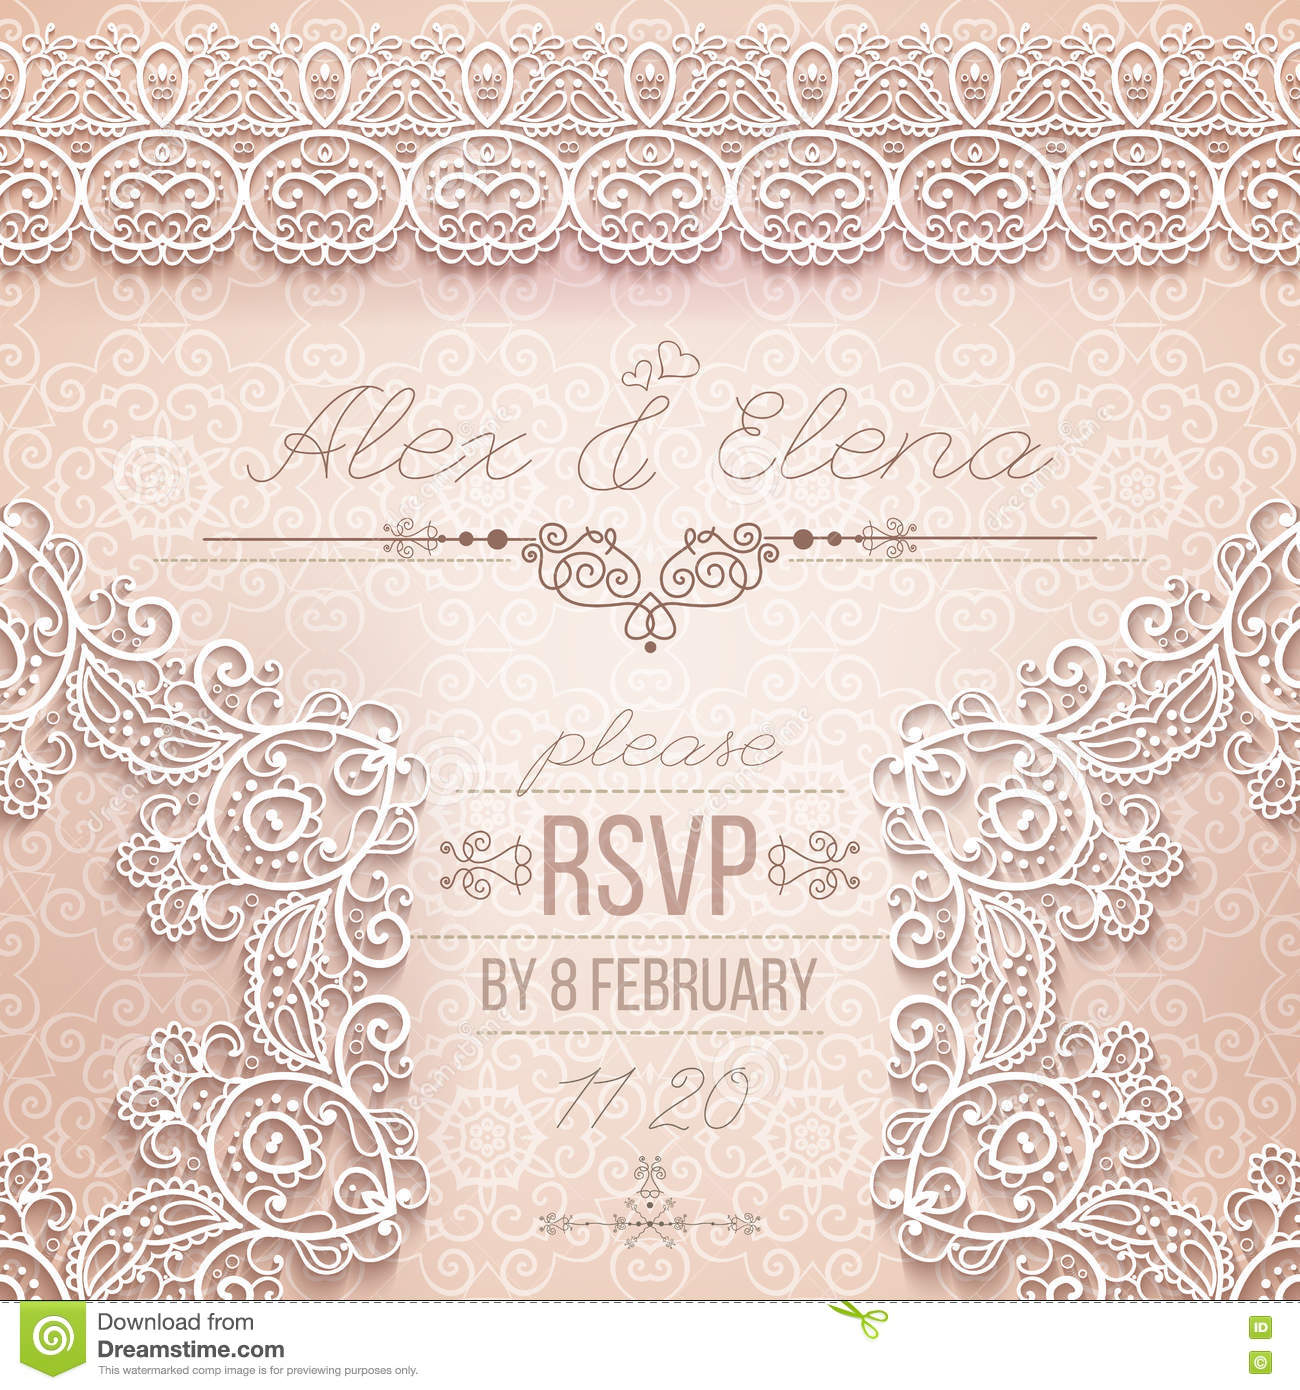 d6439c303c Vintage Wedding card or invitation with abstract lace seamless background  and borders. vector. More similar stock illustrations